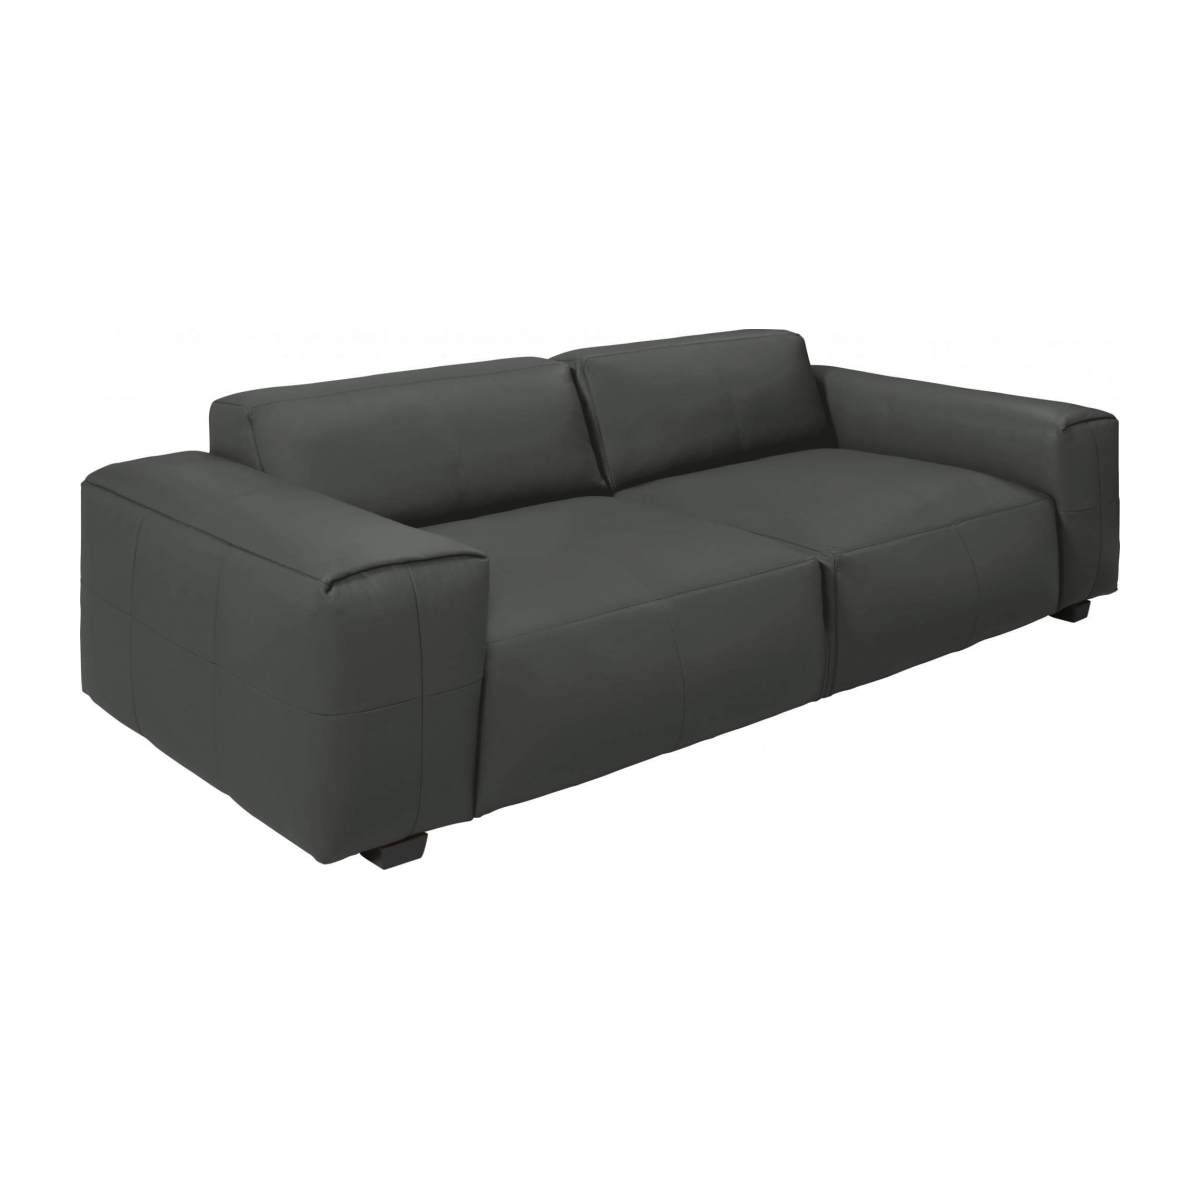 2 seater sofa in Savoy semi-aniline leather, grey n°4